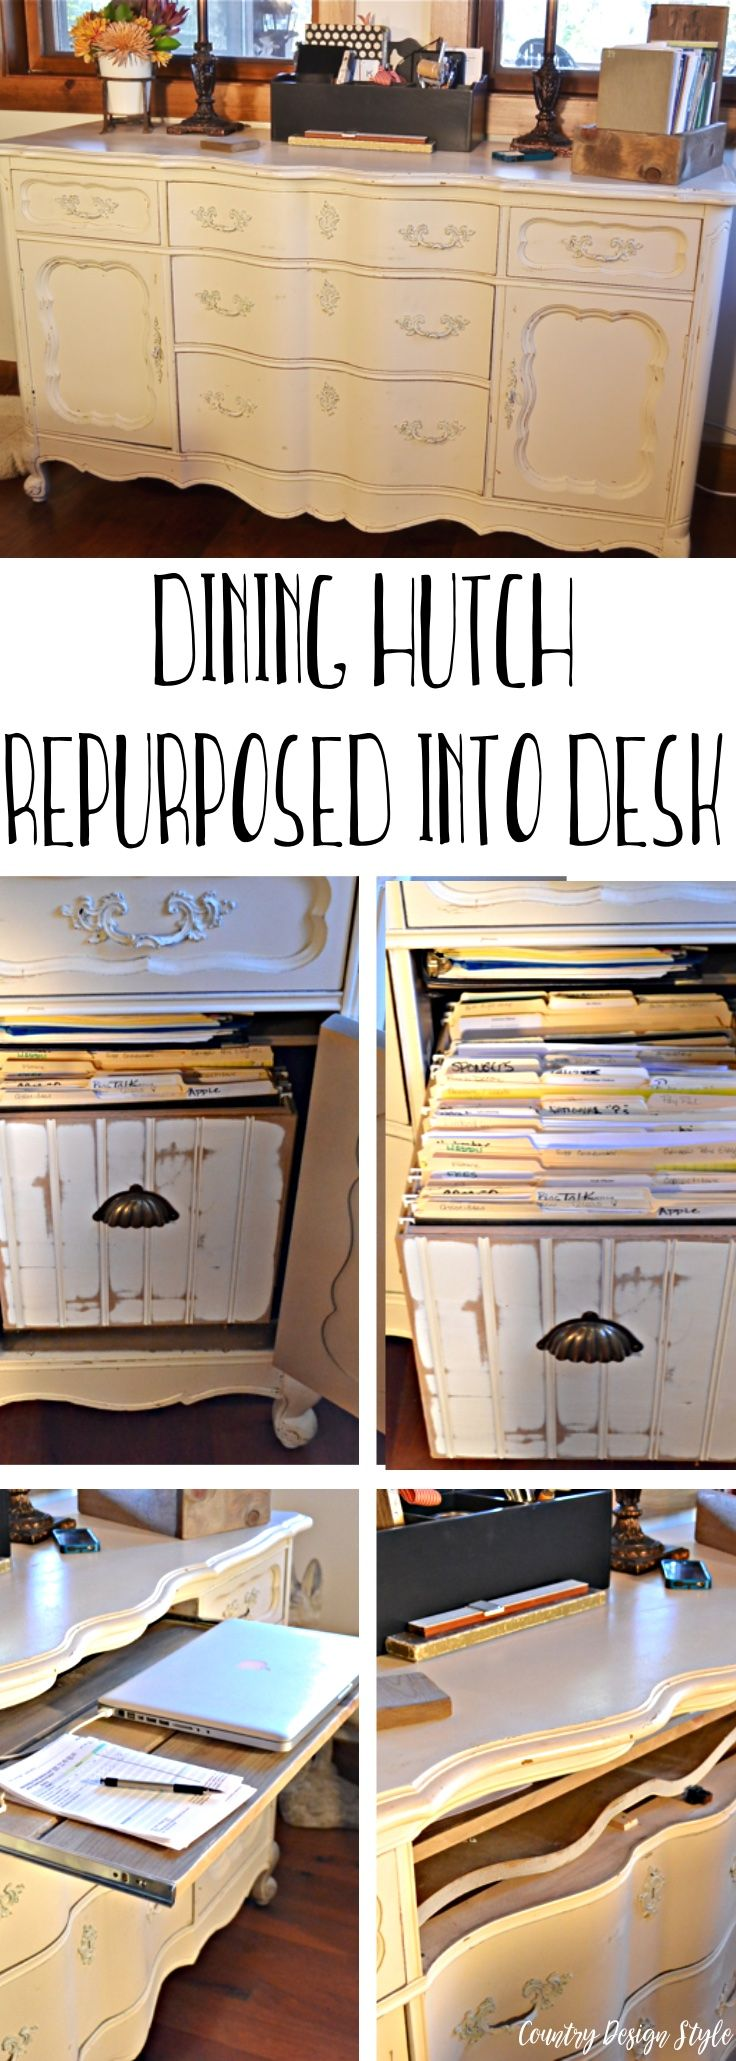 How I turned a unused dining hutch into a desk for blogging.    Country Design Style   countrydesignstyle.com #repurposedfurniture